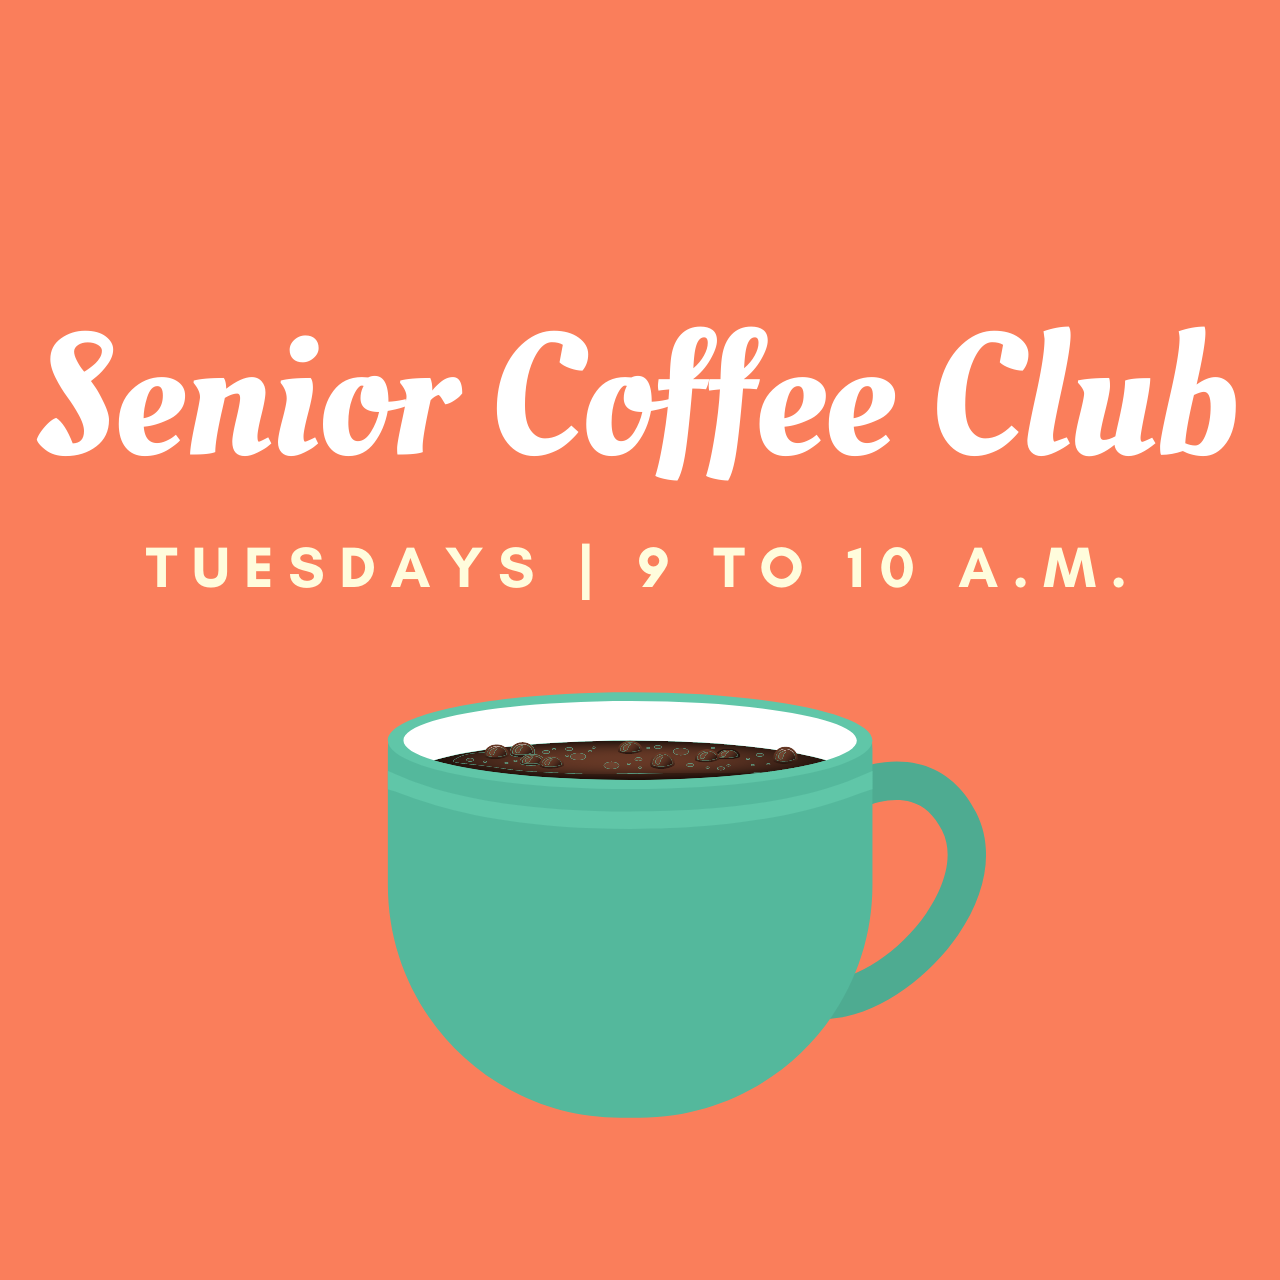 Senior Coffee Club